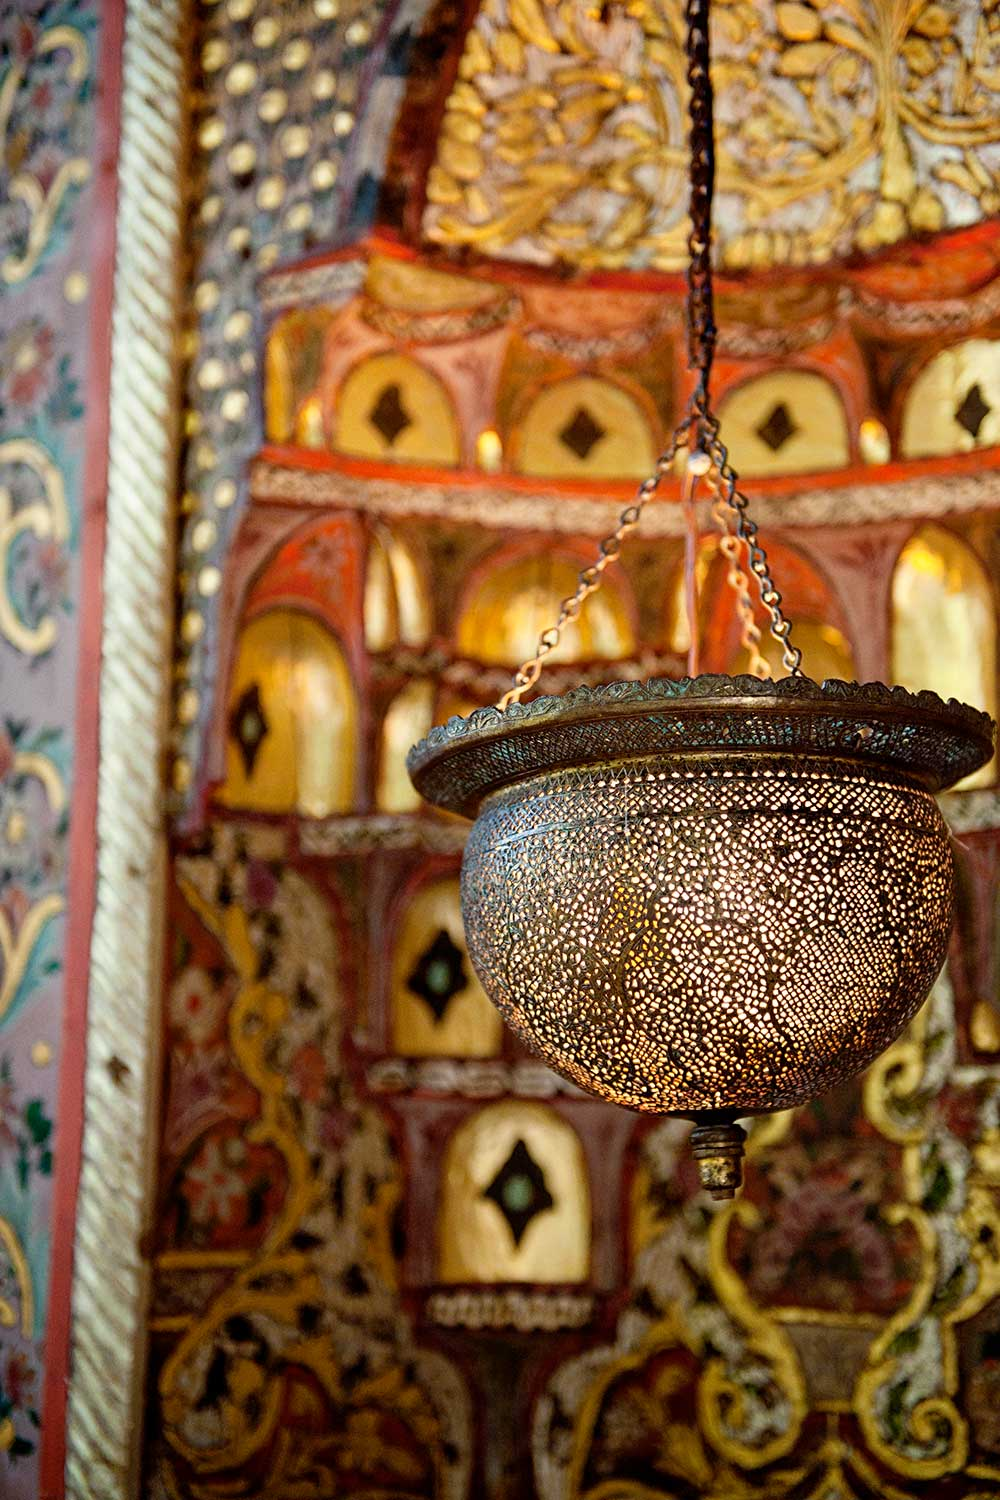 closeup of lamp inside Shangri La Turkish room